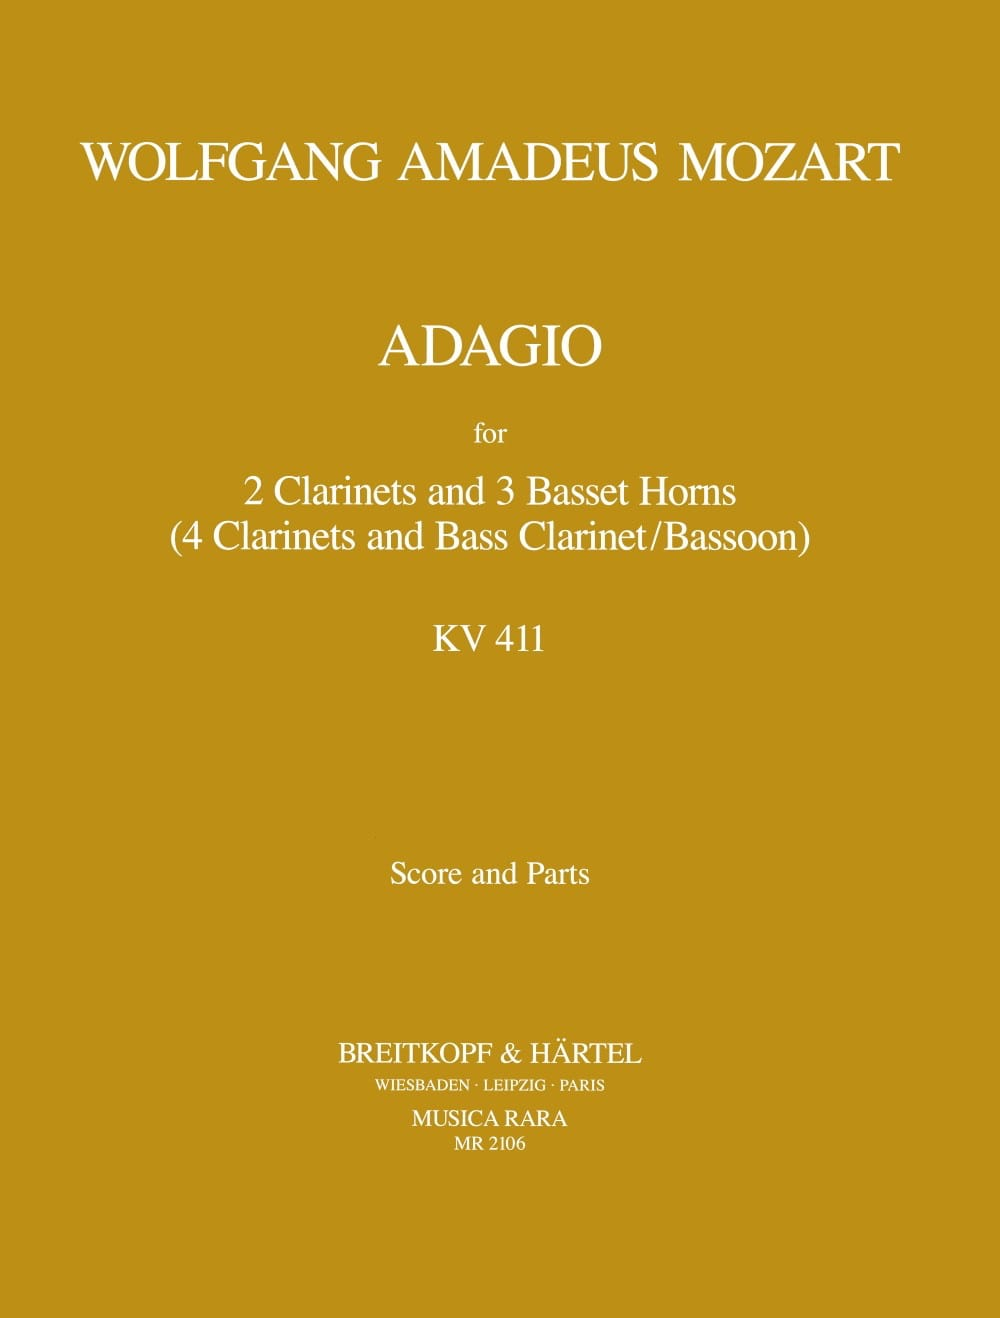 MOZART - Adagio, Kv 484a 411 - 2 Clarinets-3 Basset Horns - Partition - di-arezzo.co.uk